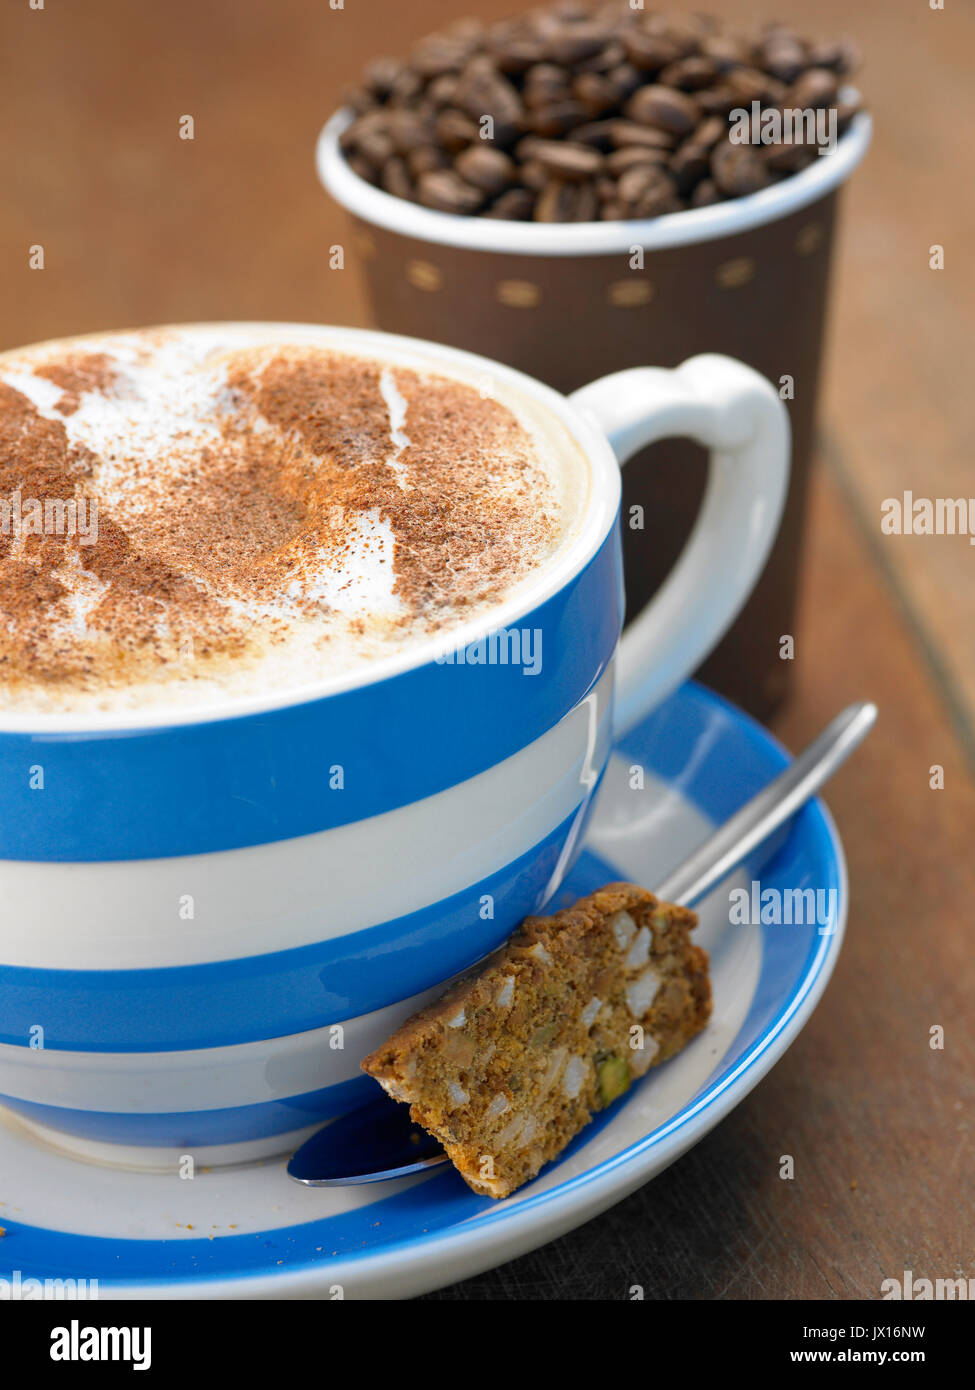 cappuccino coffee in large blue and white mug with cinnamon with takeaway cup full of beans ,newspaper and biscotti - Stock Image